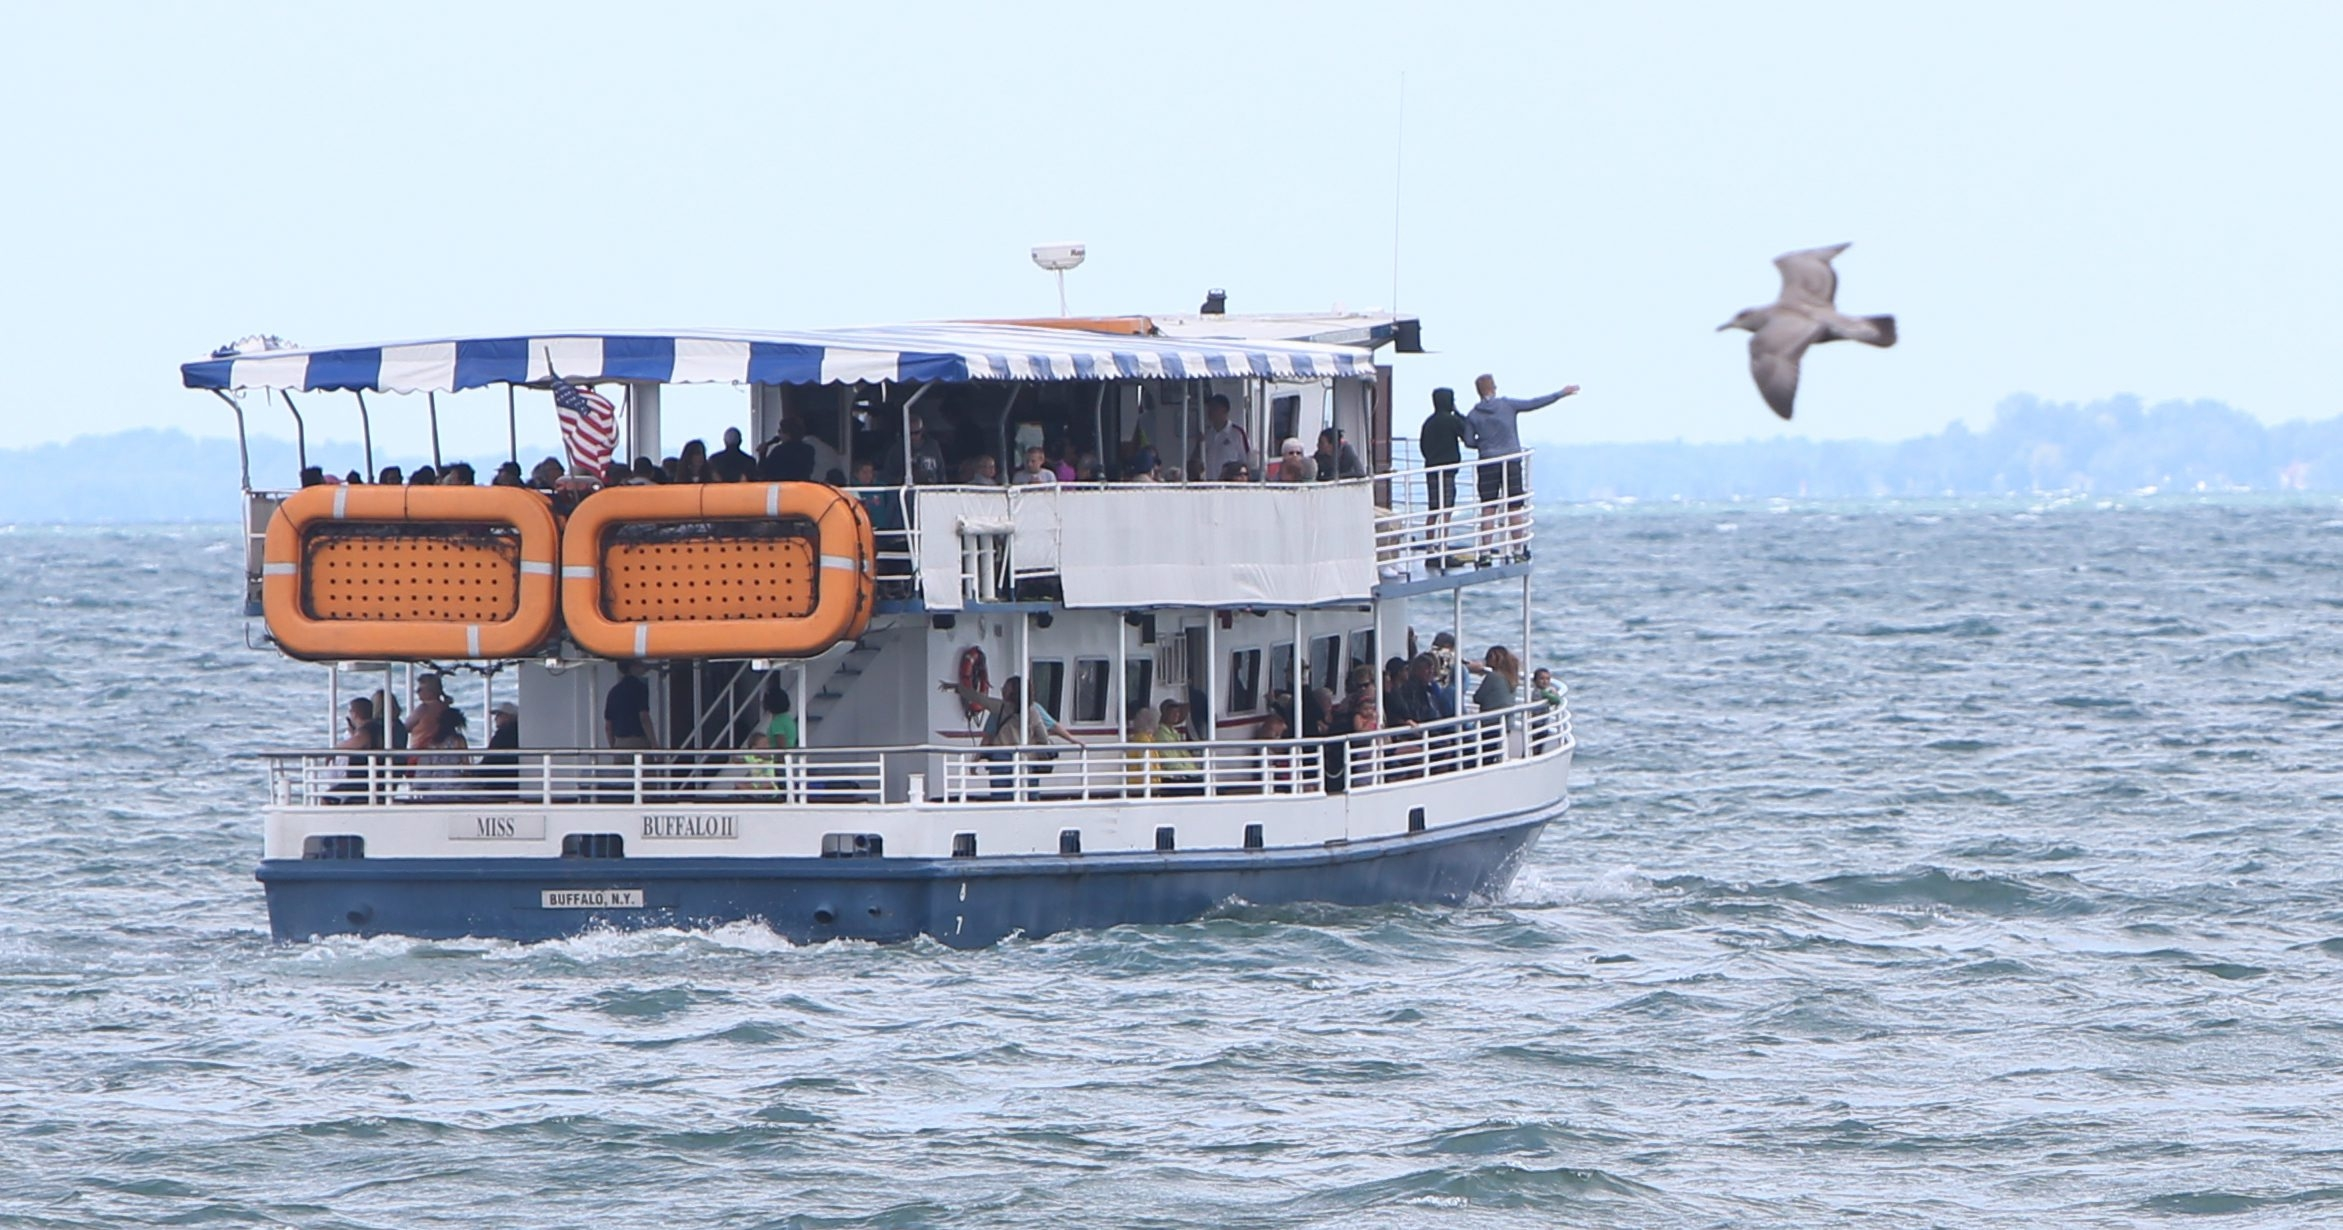 Experts will provide commentary during a June 11 Penn Dixie cruise aboard the Miss Buffalo. (Sharon Cantillon/Buffalo News)